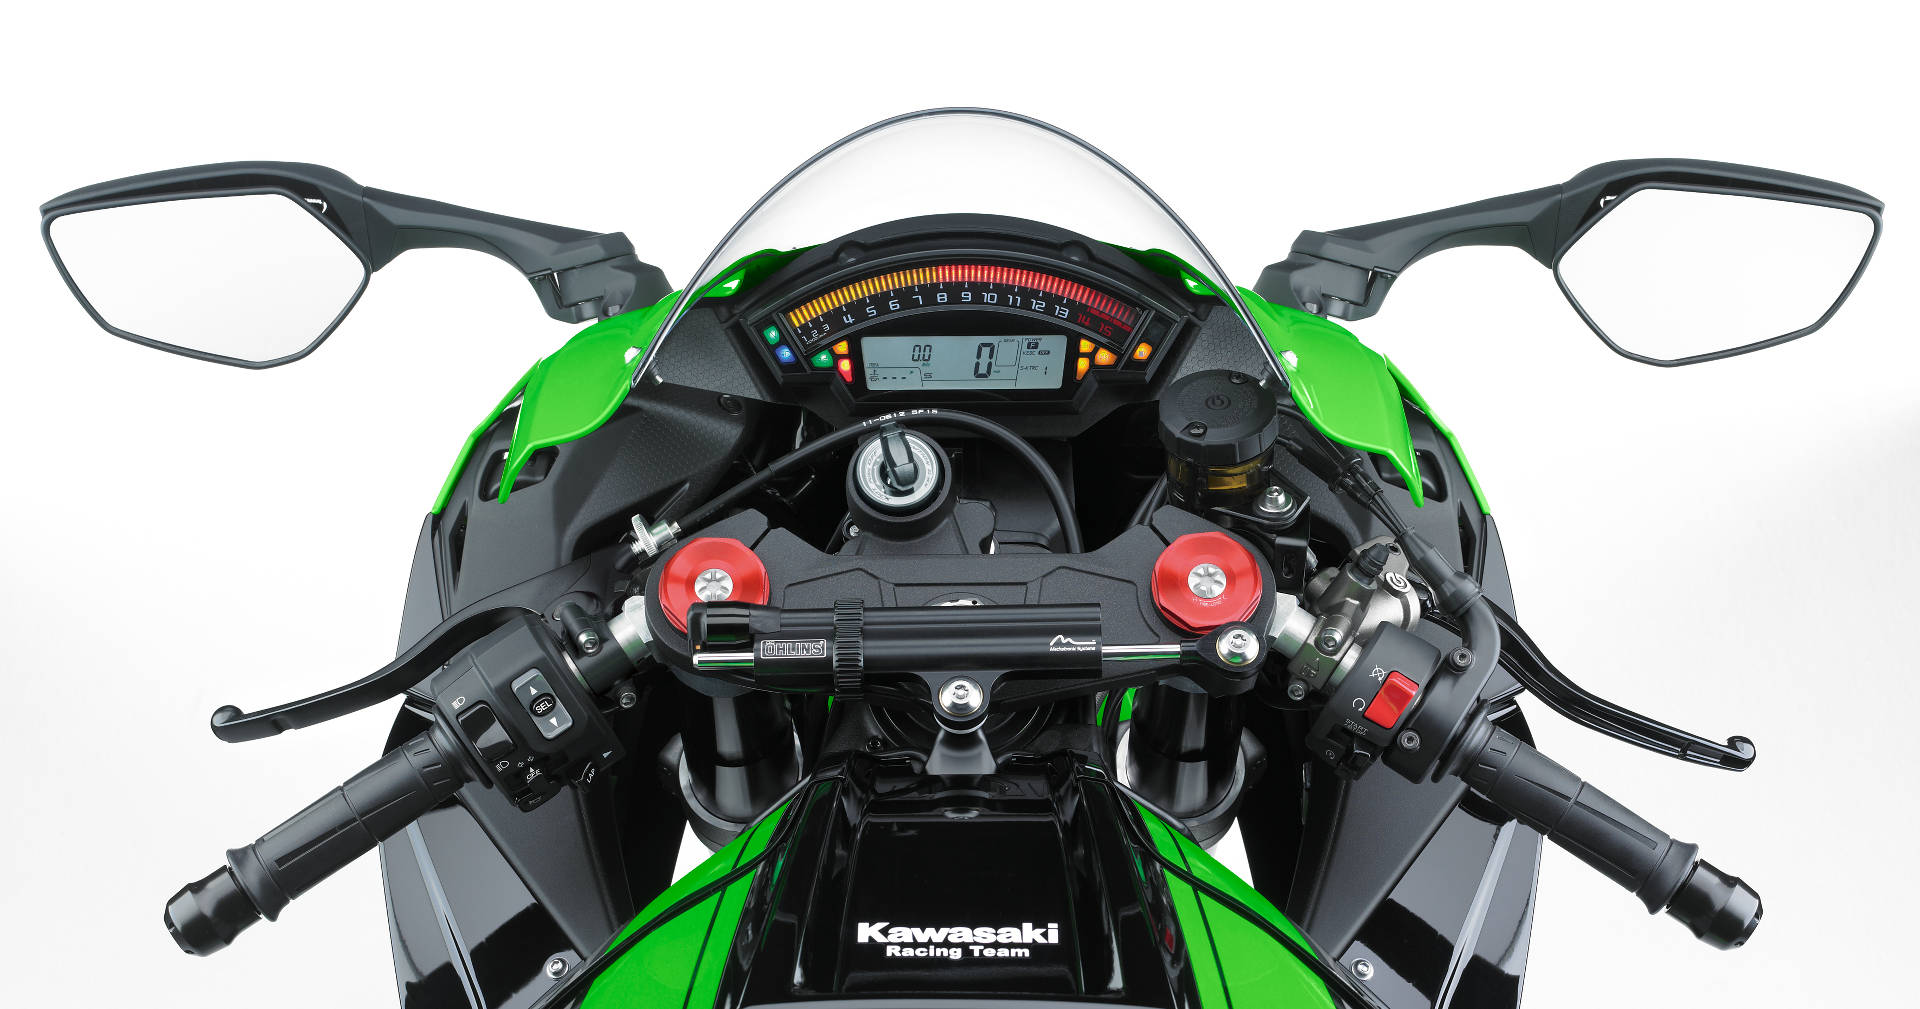 Kawasaki Team Green Suspension Settings